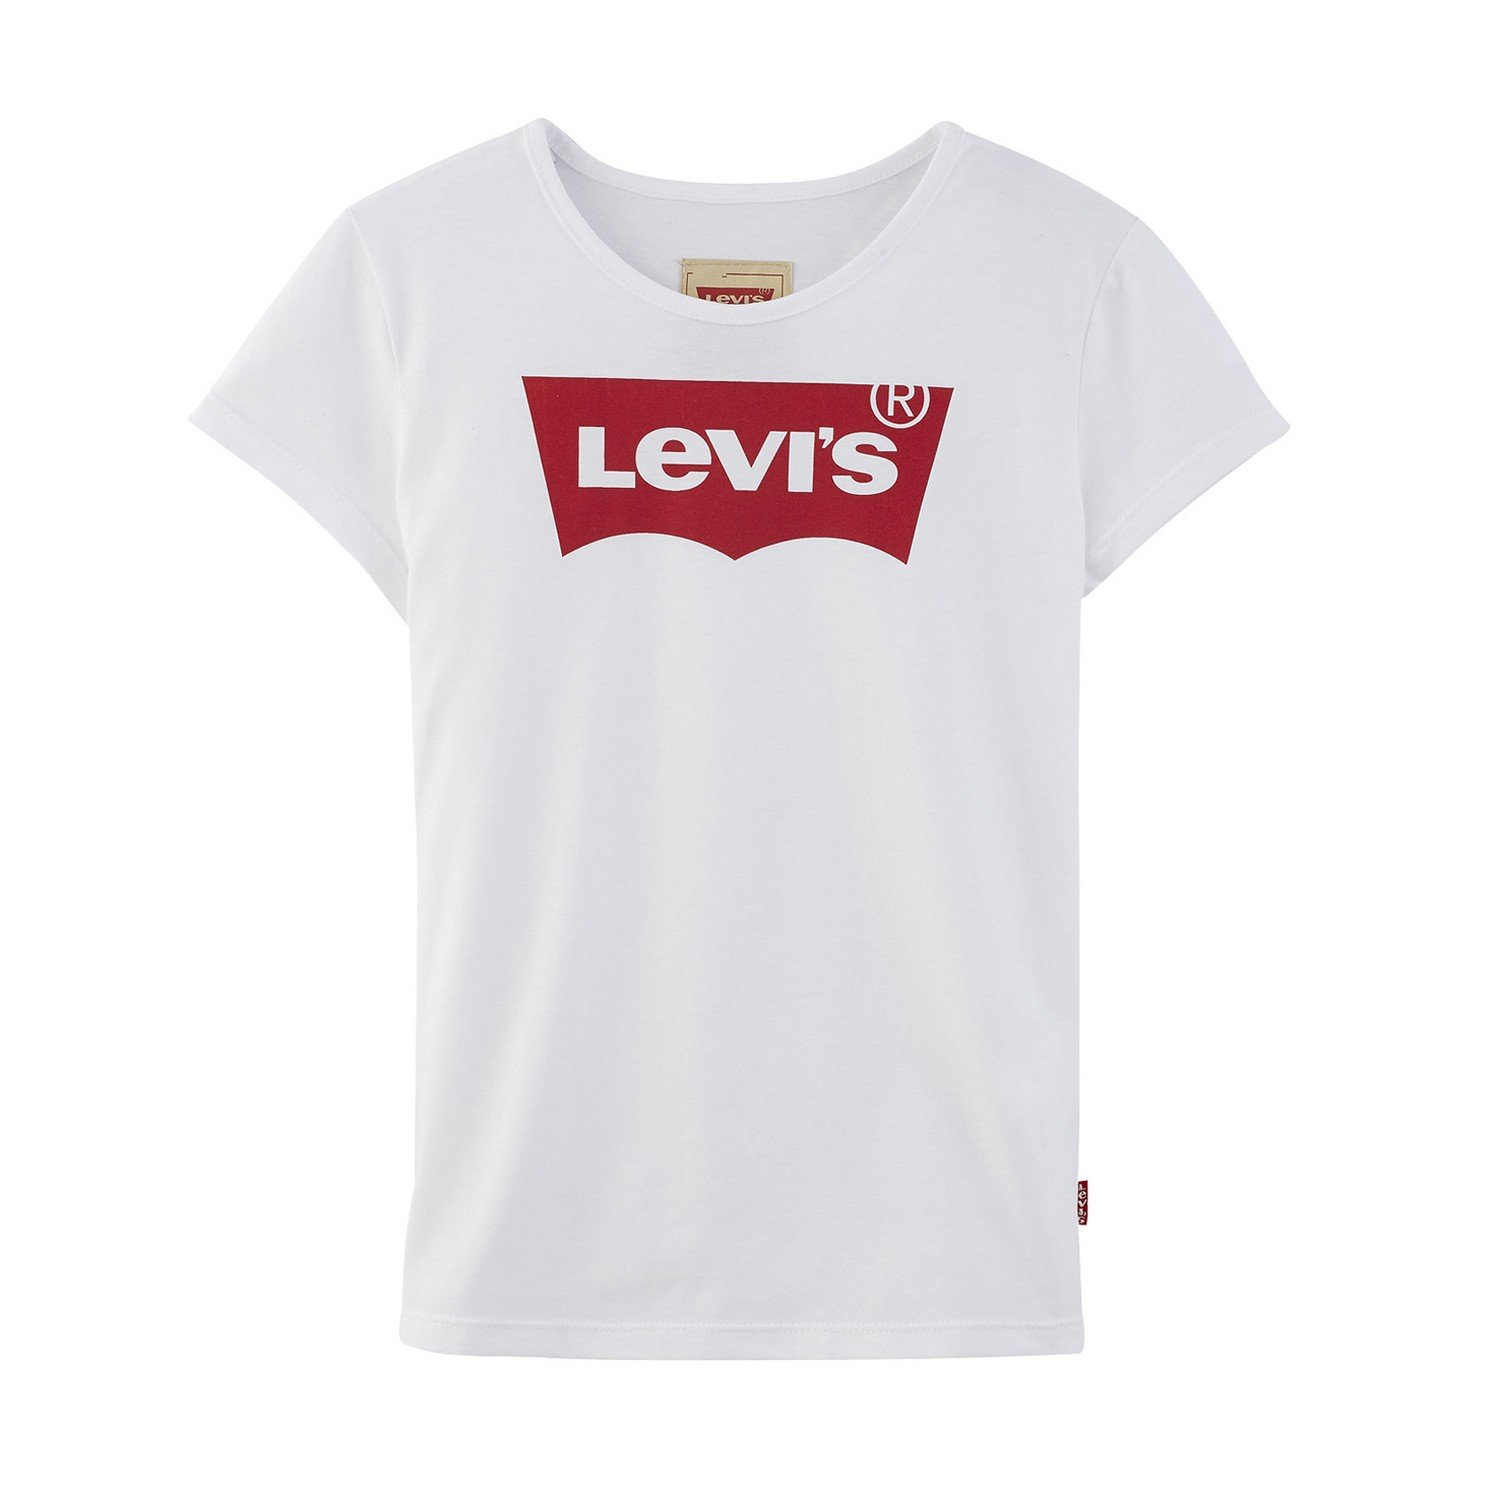 Levi's Kids Short Sleeves Batwin T-Shirt, Fille product image